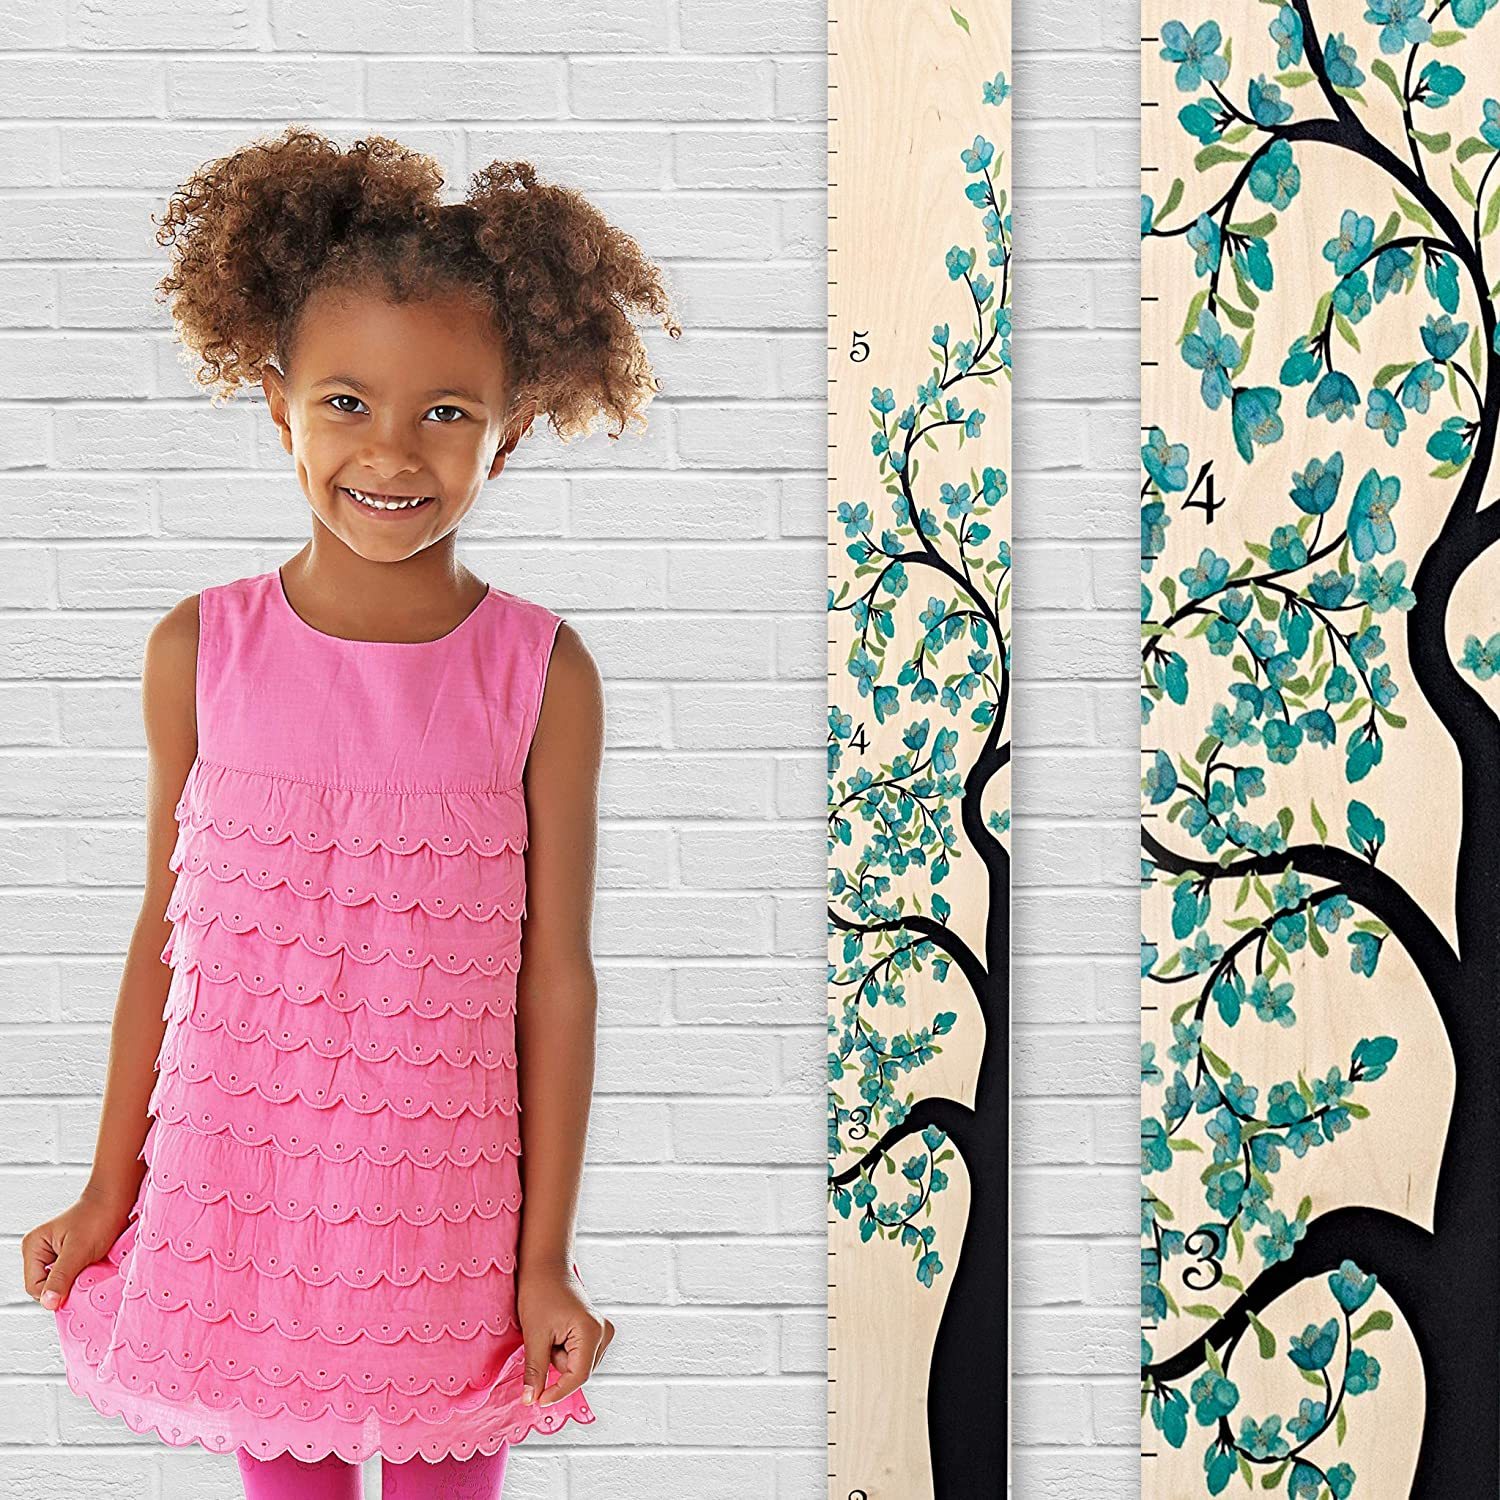 Growth Chart Art | Wooden Growth Chart Girls | Measuring Kids Height Wall Décor | Flower Growth Chart Ruler | Tree of Life Purple R-TOLFBP